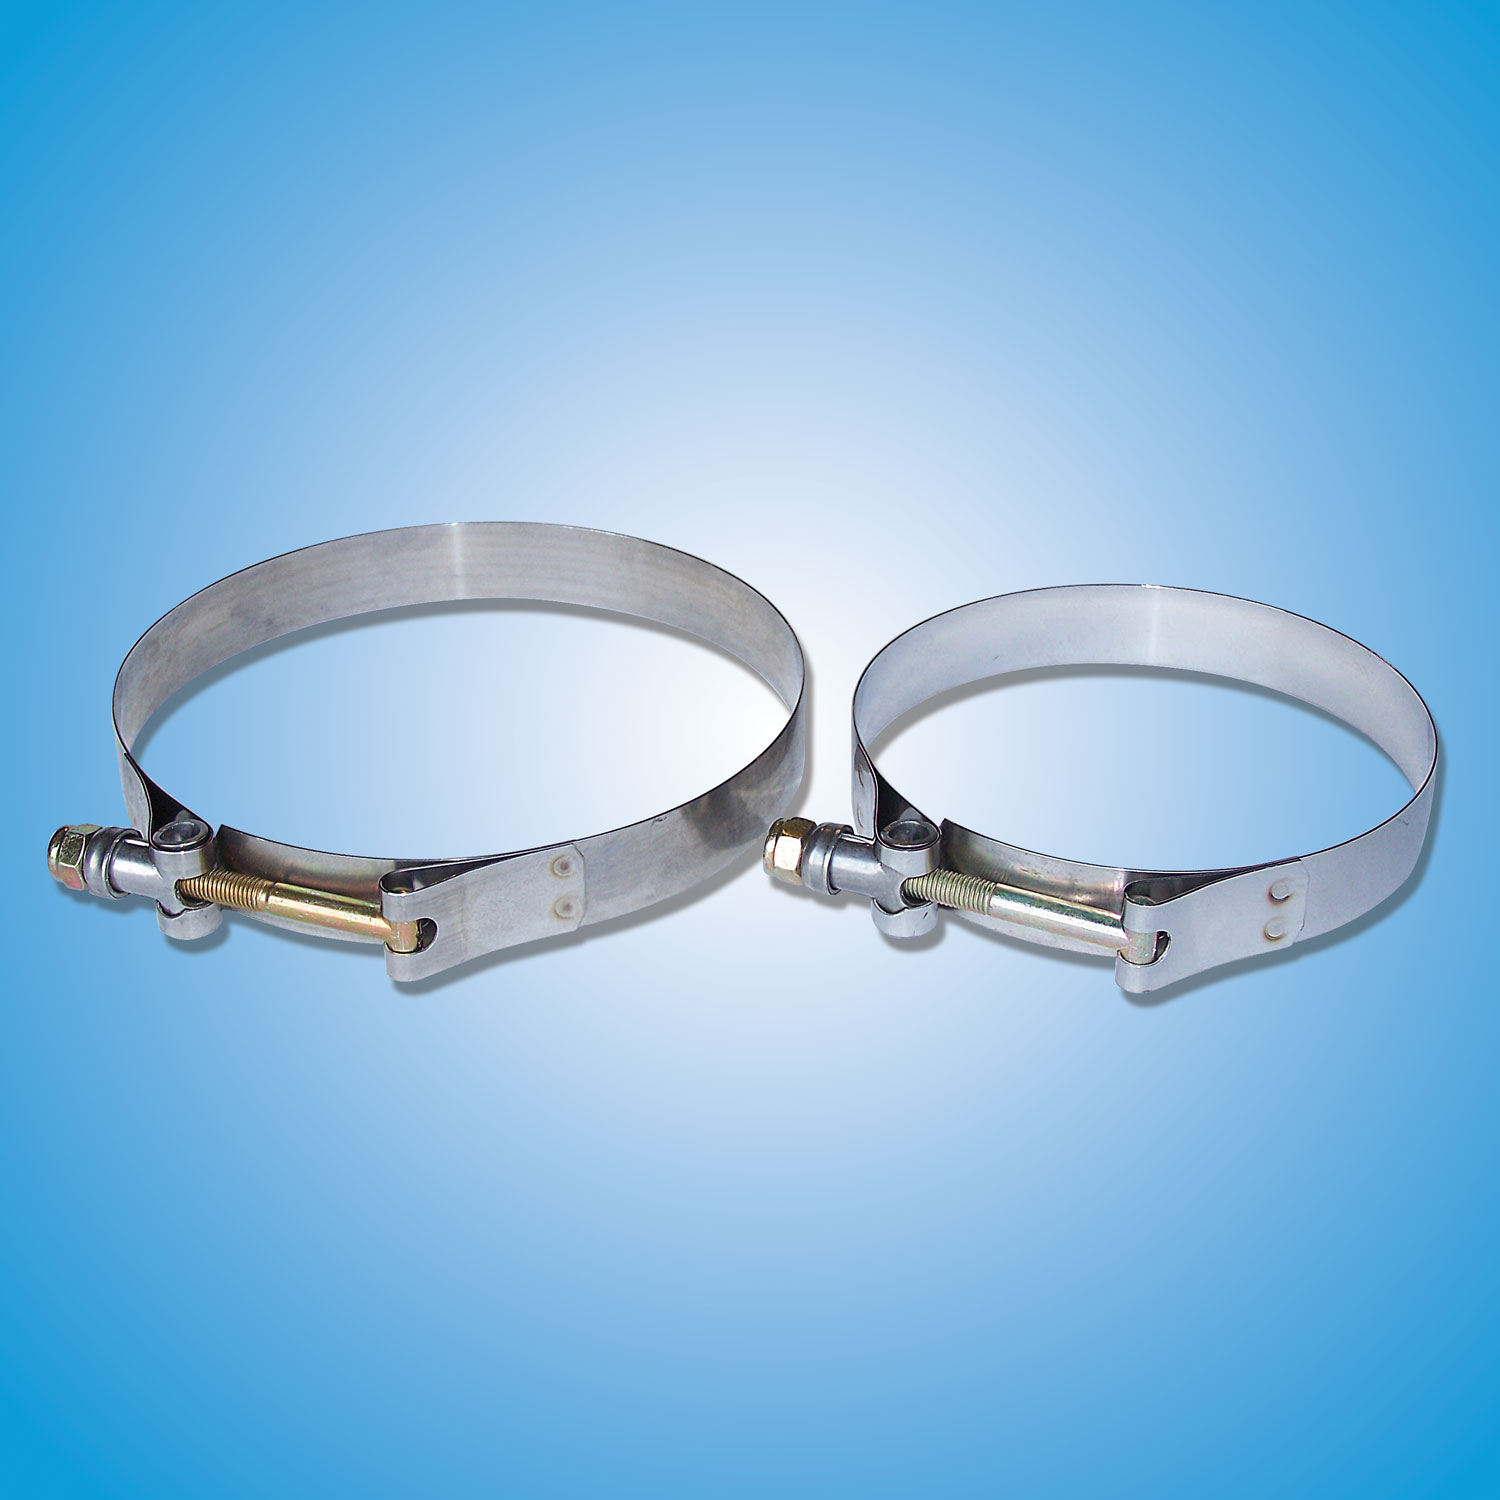 Mounting Clamps   To use with fire bottle mount.   5# Mounting Clamps  Part #FBTBC9050 — $5.50   10# Mounting Clamps  Part #FBTBC9051 — $6